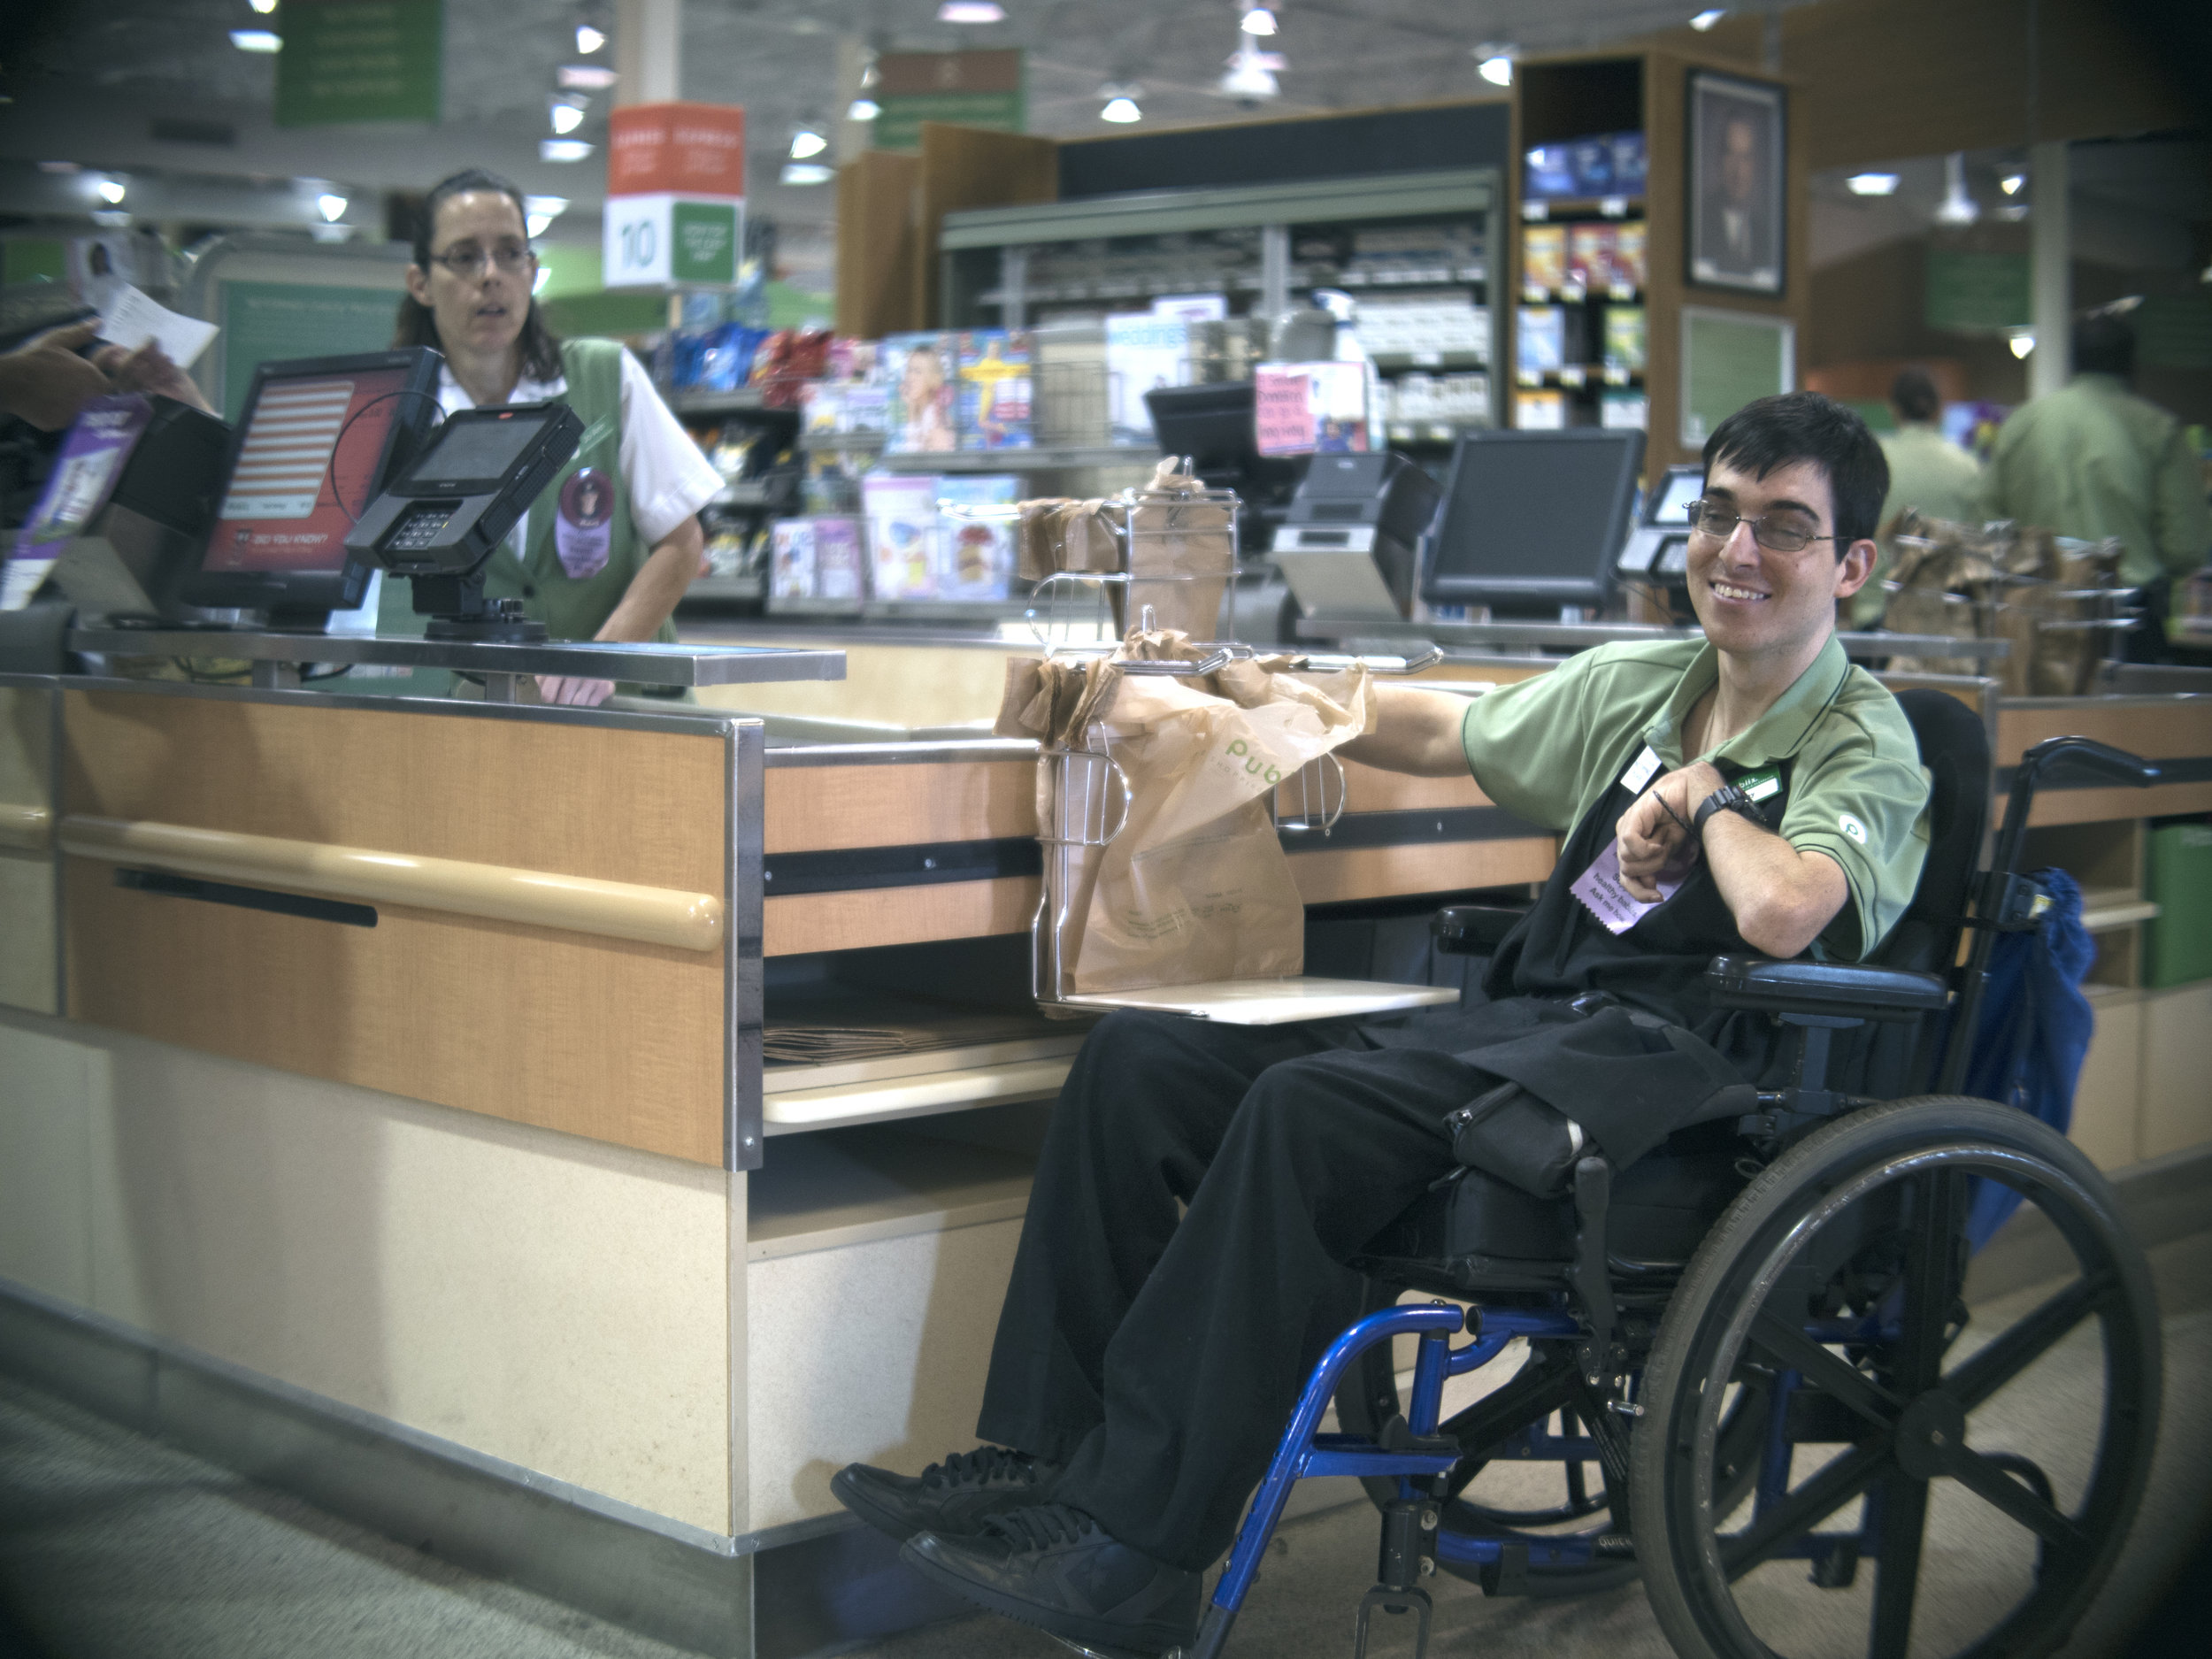 Corey '15 is providing customer support at Publix.